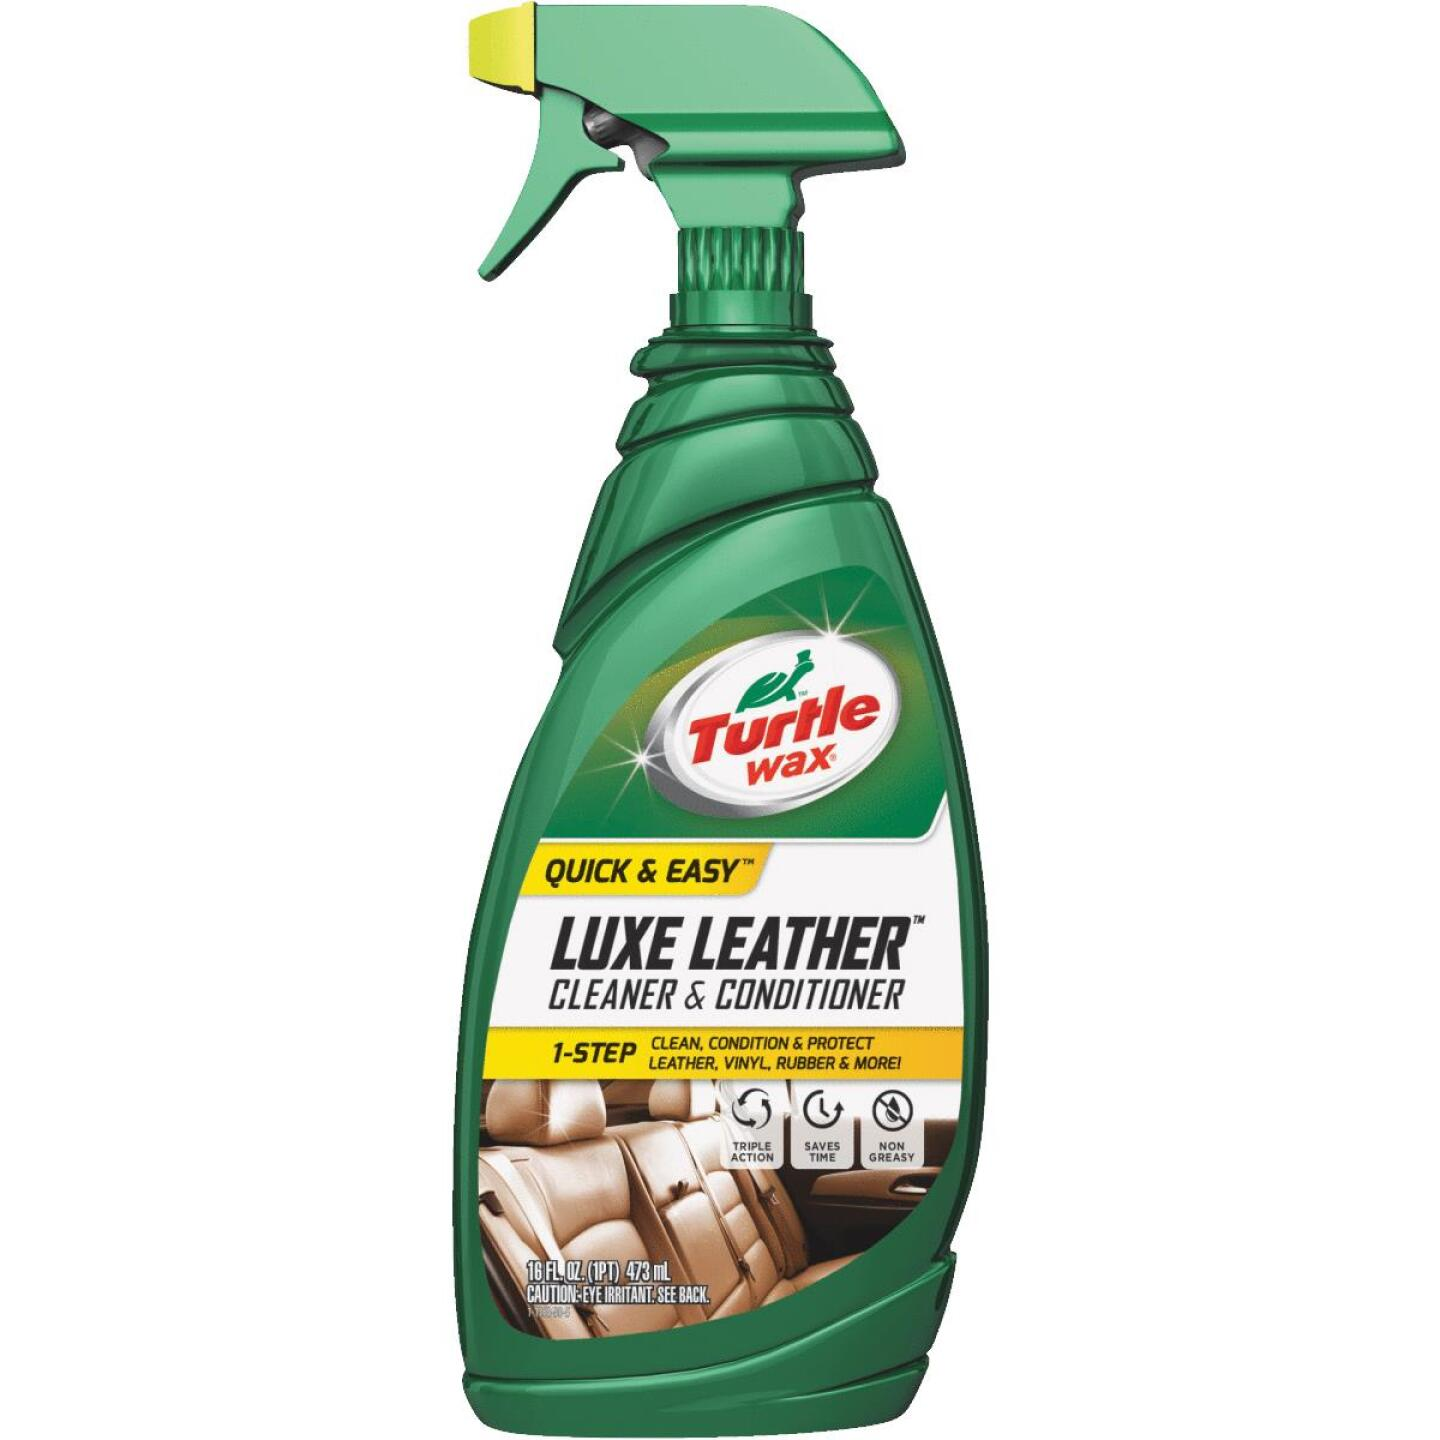 Turtle Wax Luxe Leather 16 oz Trigger Spray Leather Cleaner Image 1